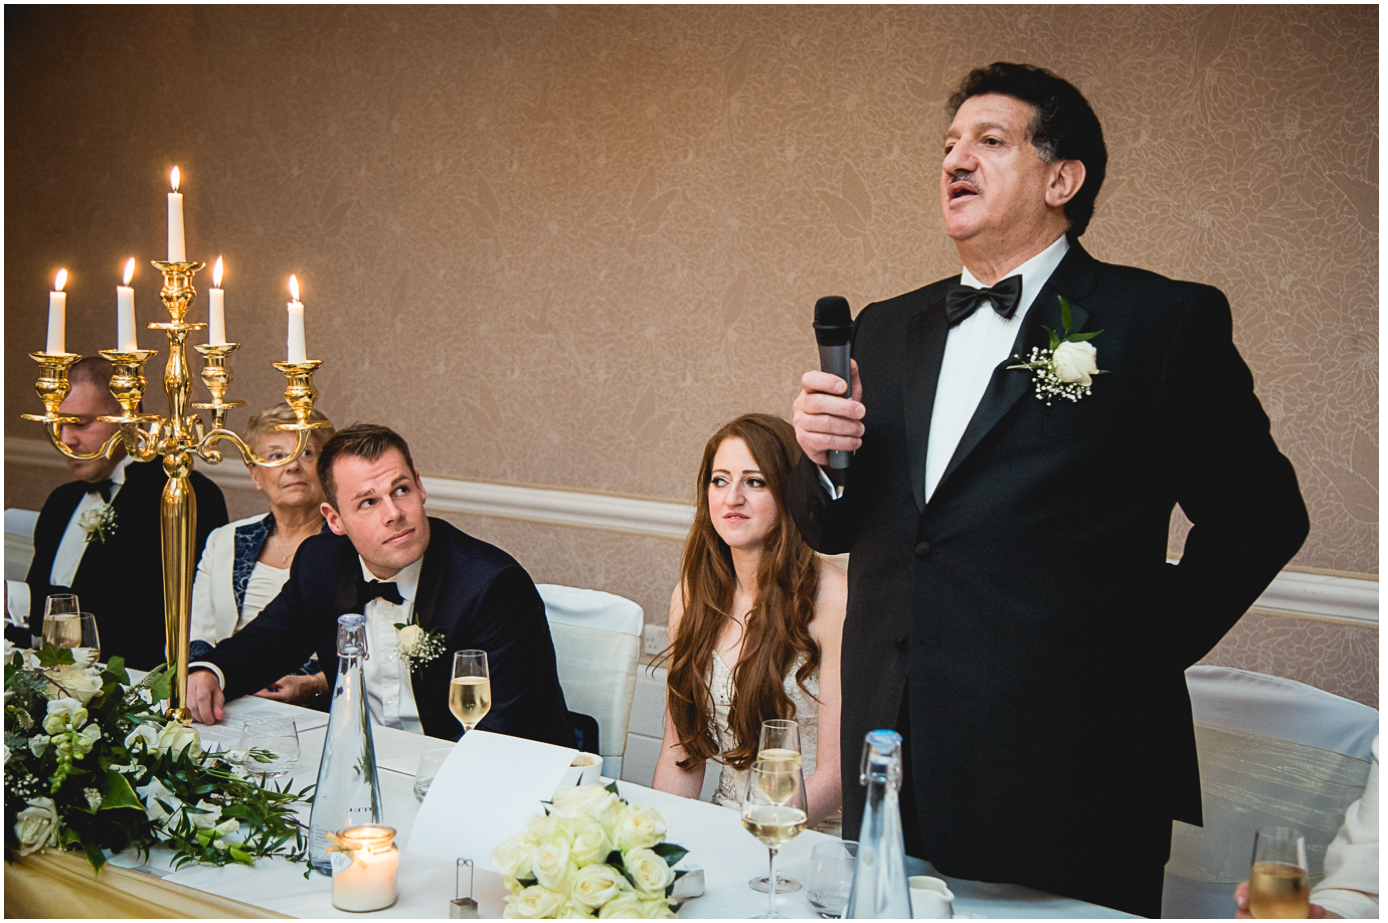 69 - Esmat and Angus - St. Ermin's Hotel London wedding photographer